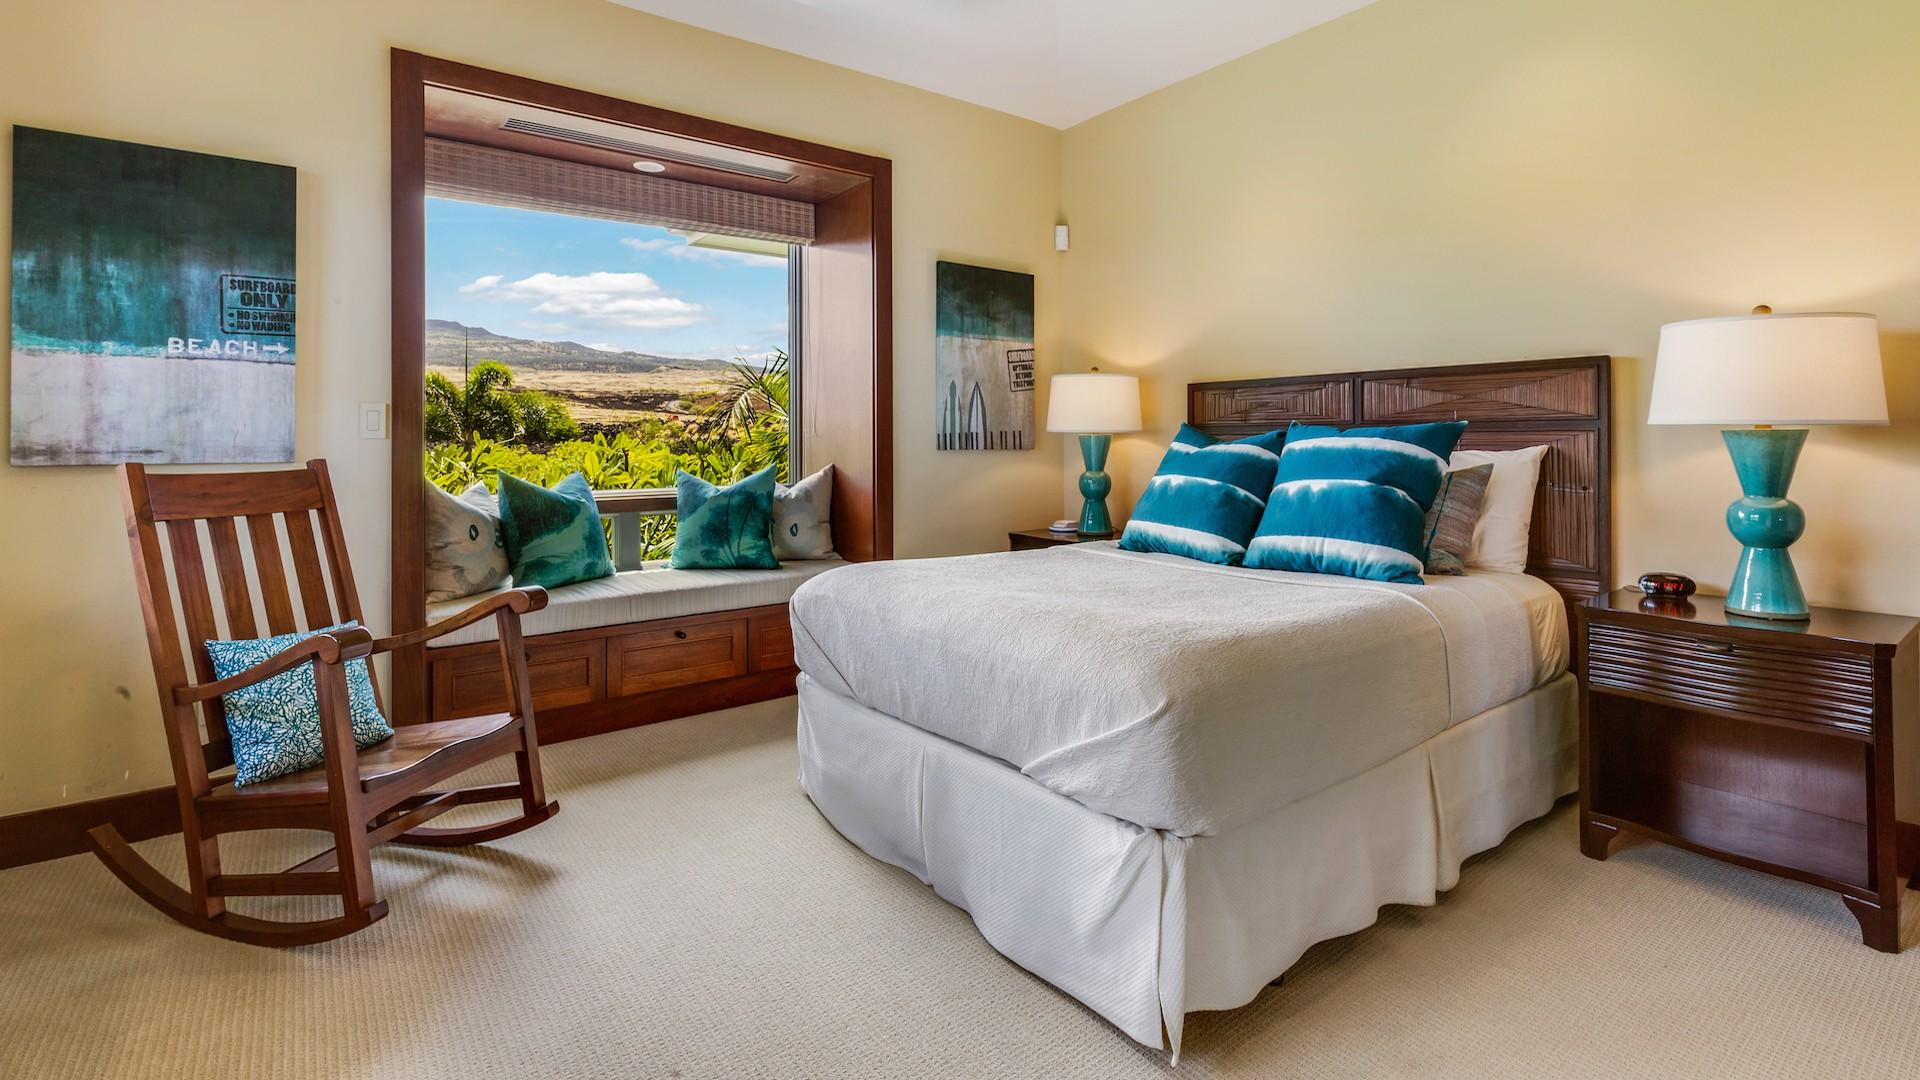 Second bedroom, with en suite bathroom and views of Mount Hualalai.